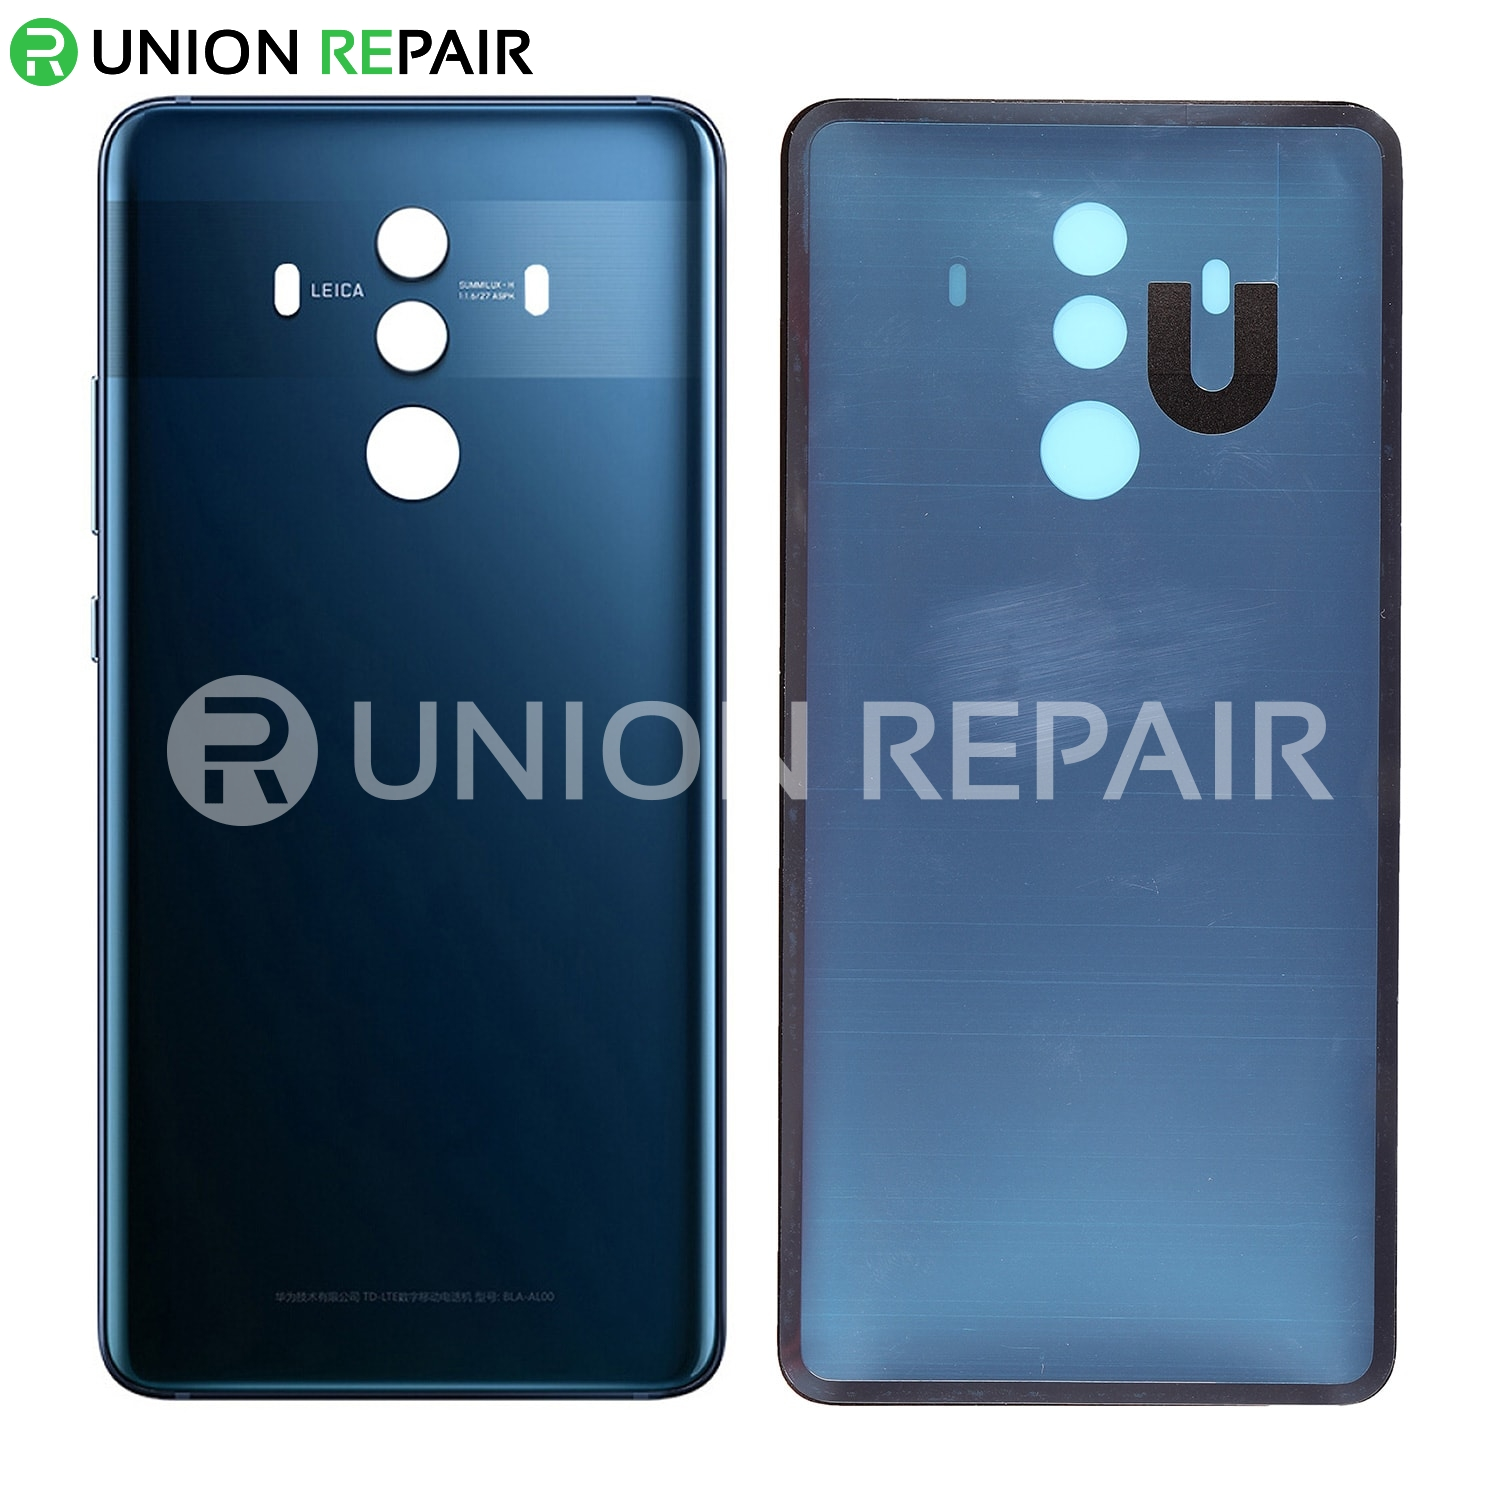 Replacement for Huawei Mate 10 Pro Battery Door - Midnight Blue